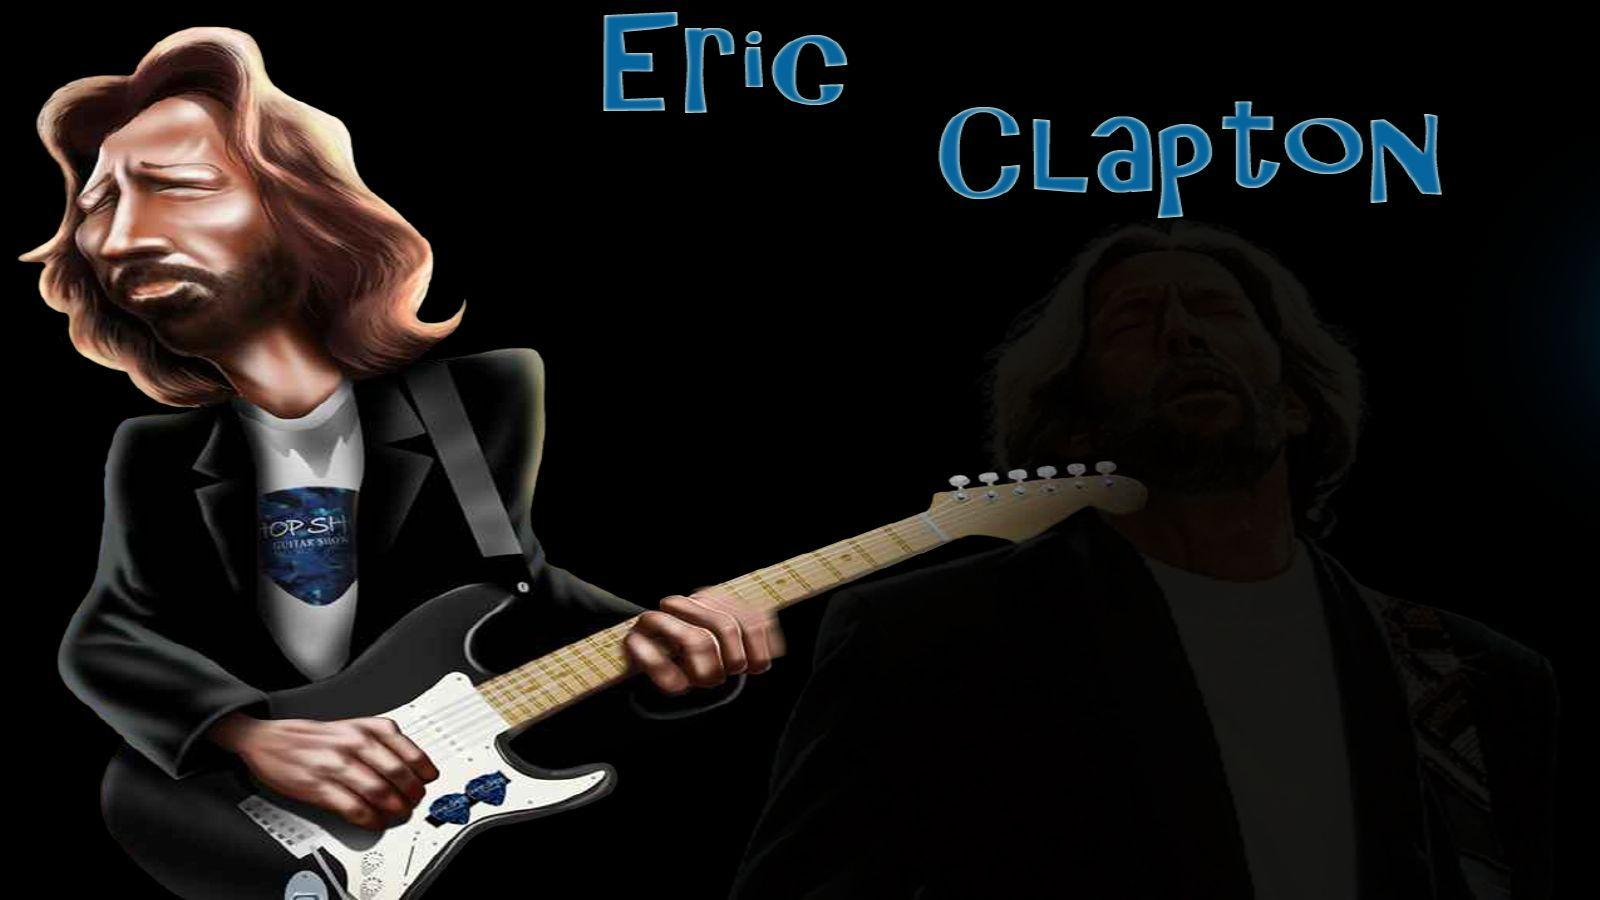 Eric Clapton Wallpapers Guitar Rock 80